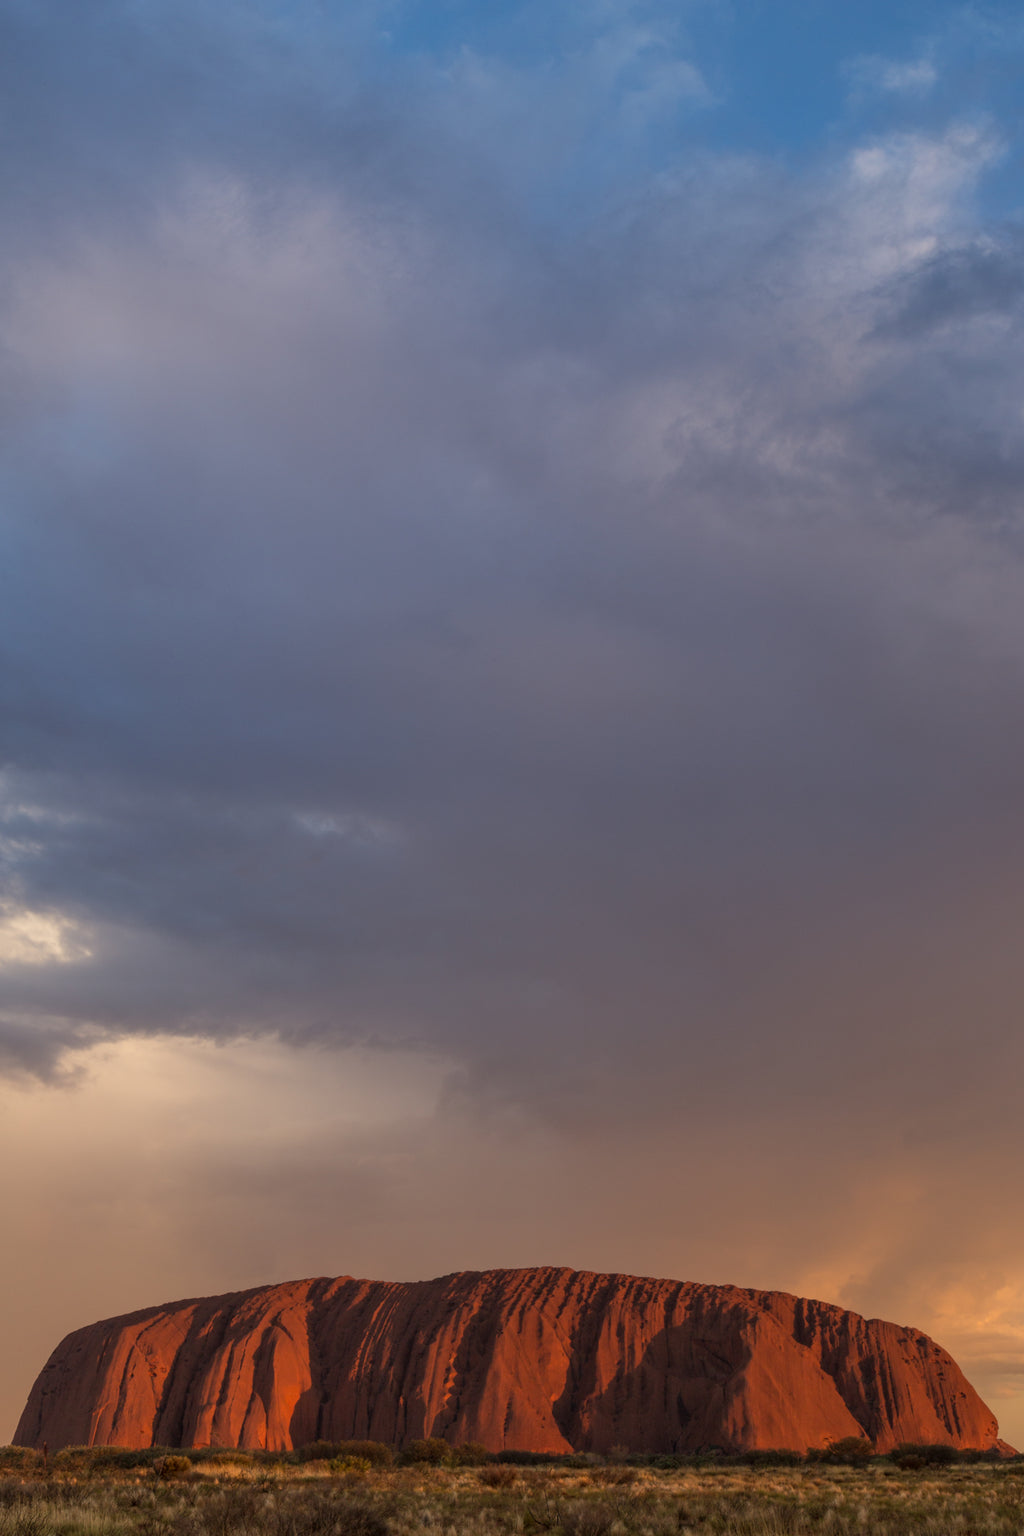 Storm clouds pass over Uluru (Ayers Rock) at sunset, Australian Outback, travel landscape photography